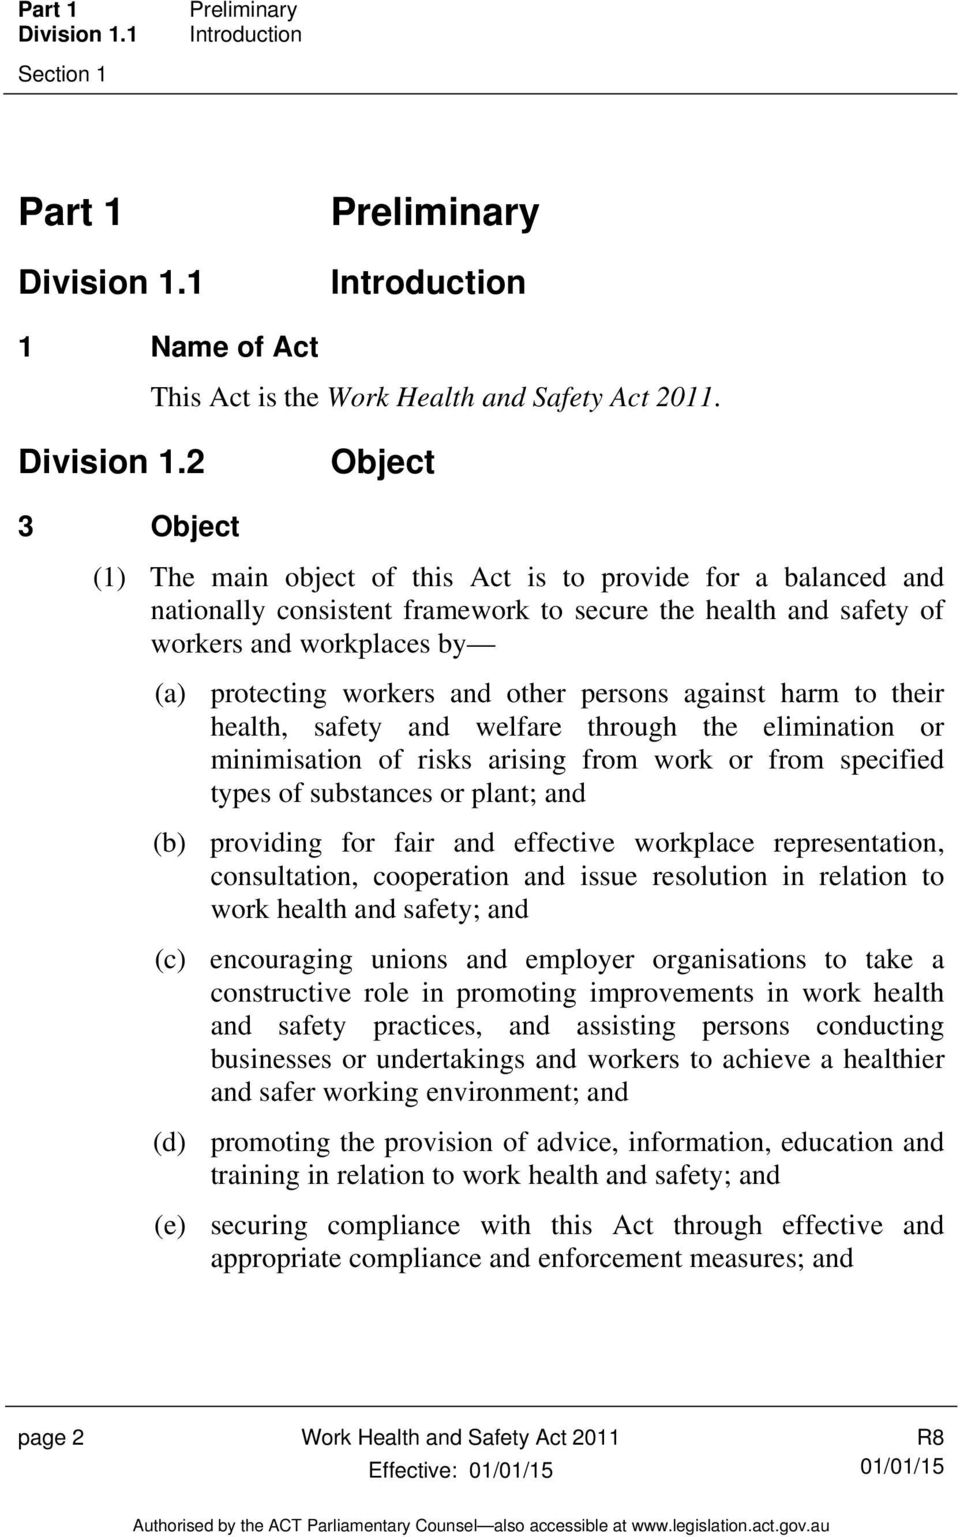 2 Object 3 Object (1) The main object of this Act is to provide for a balanced and nationally consistent framework to secure the health and safety of workers and workplaces by (a) protecting workers